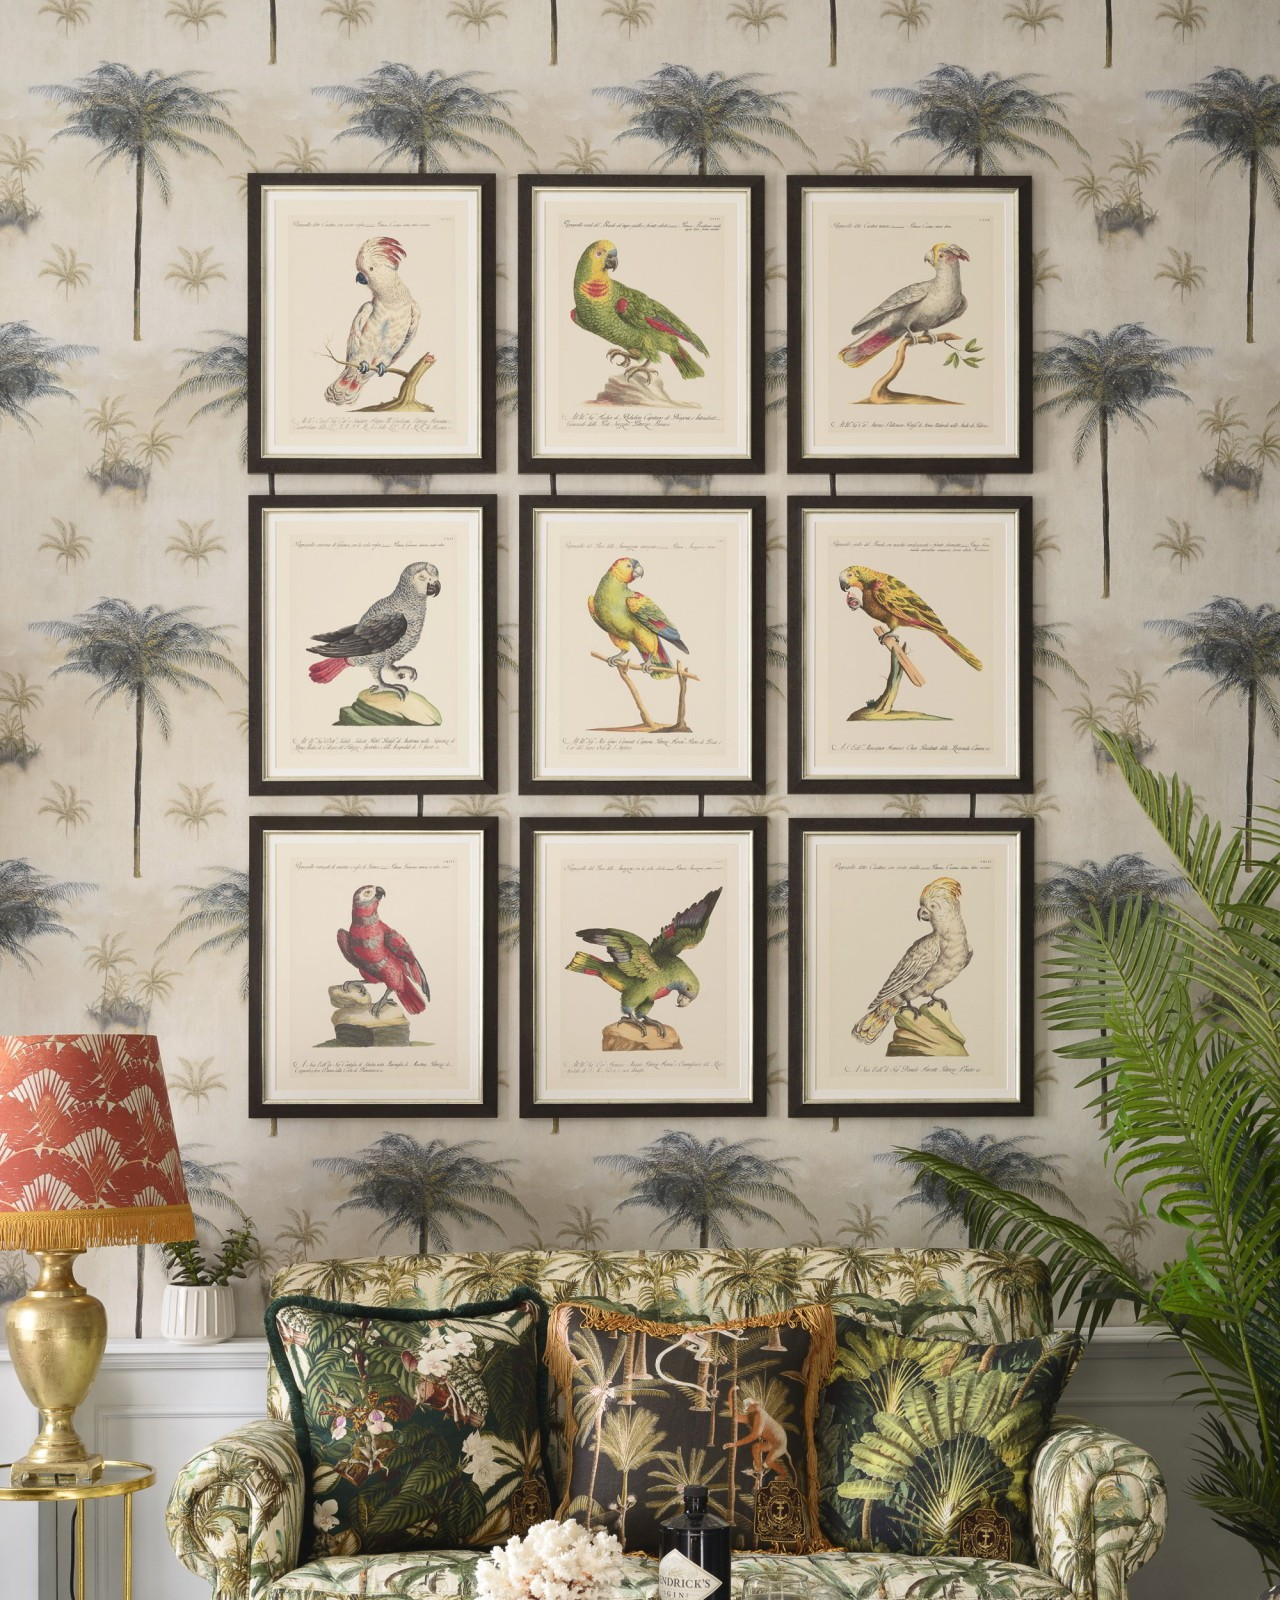 PARROTS OF BRAZIL III Framed Art